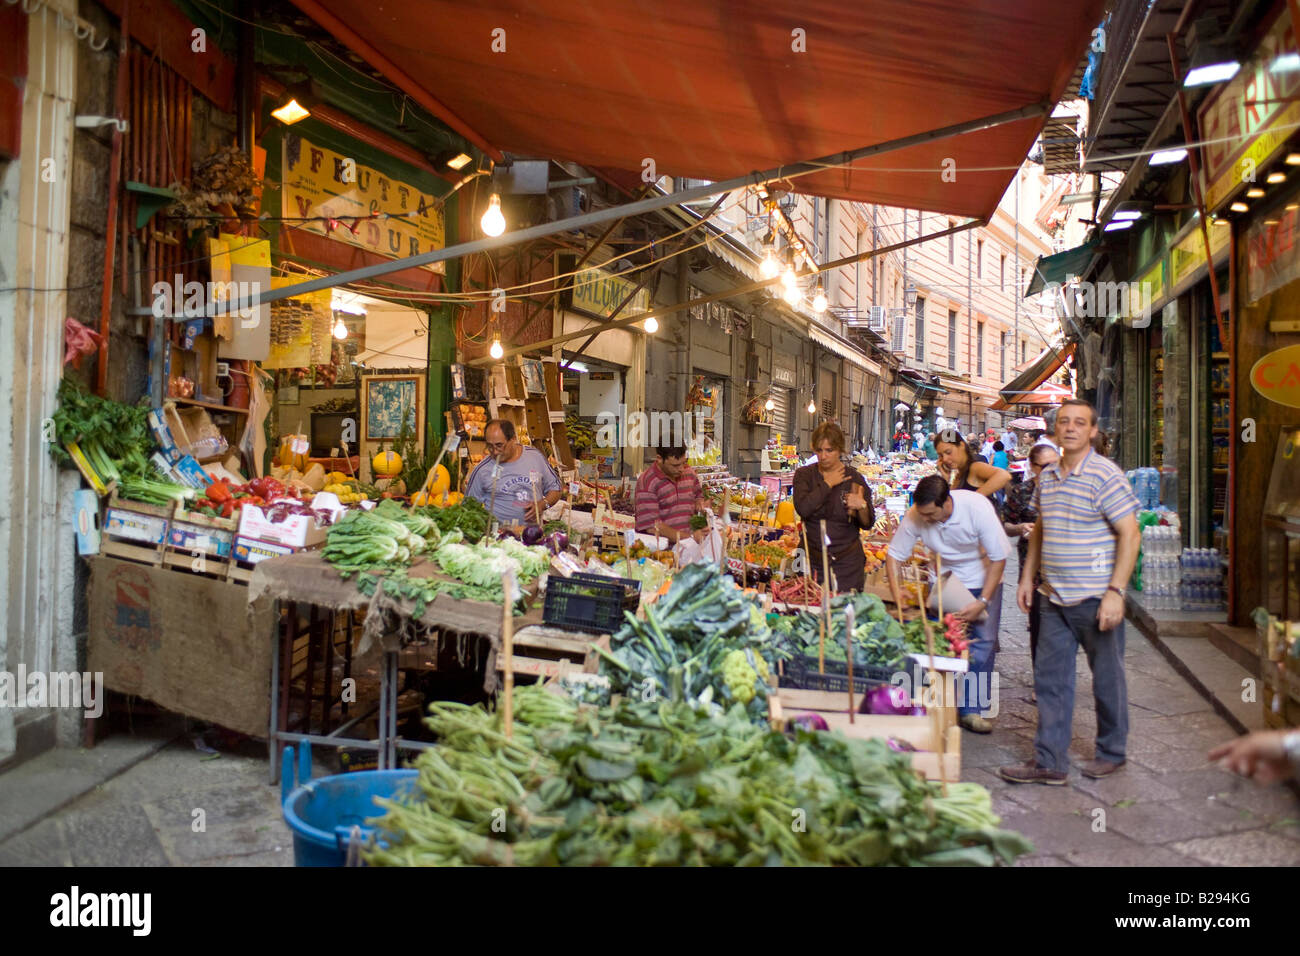 street market Palermo Sicily Date 28 05 2008 Ref ZB693 114318 0057 COMPULSORY CREDIT World Pictures Photoshot - Stock Image